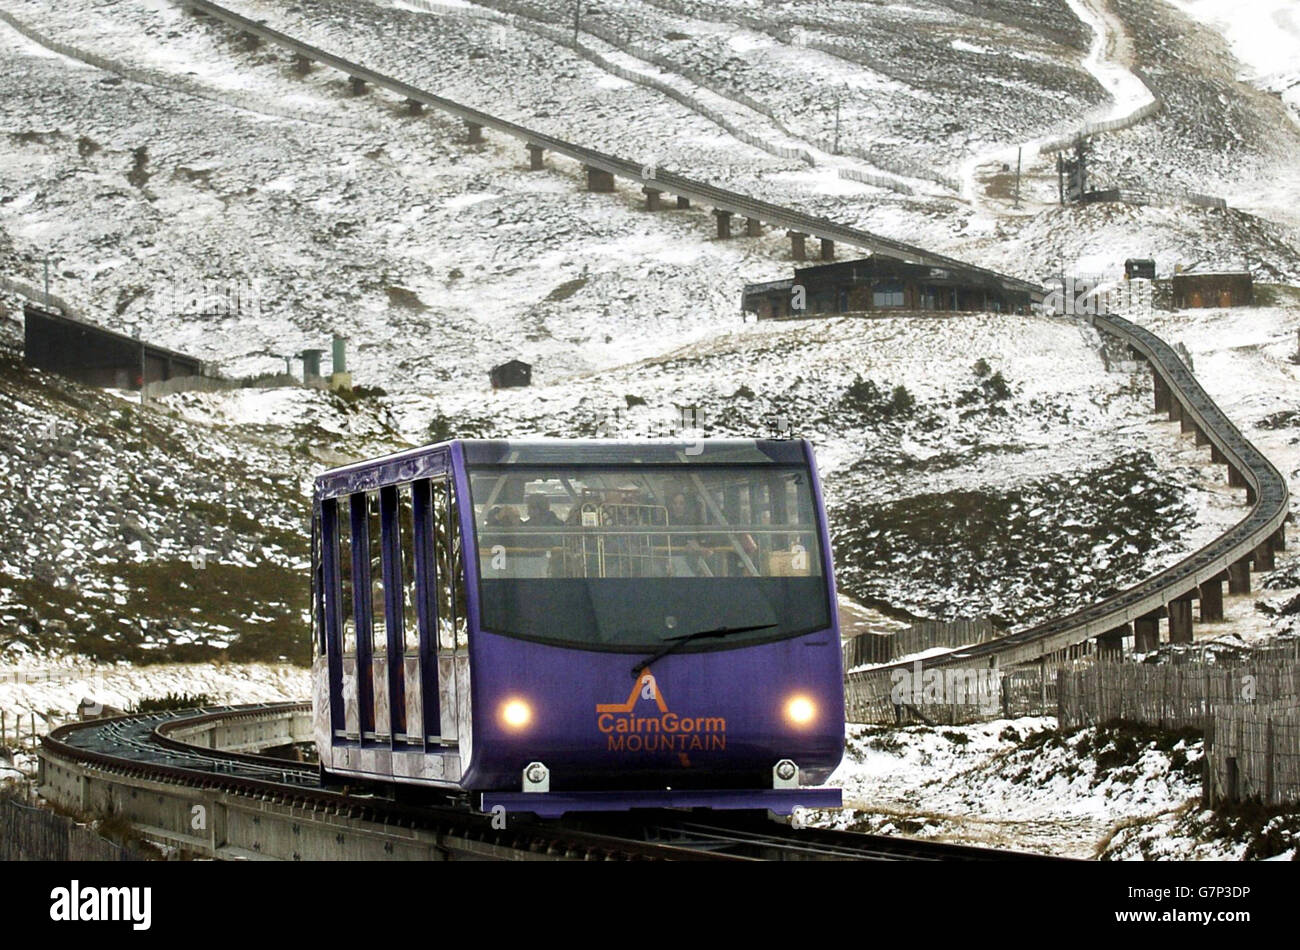 Transport - CairnGorm Mountain Railway - Scotland - Stock Image